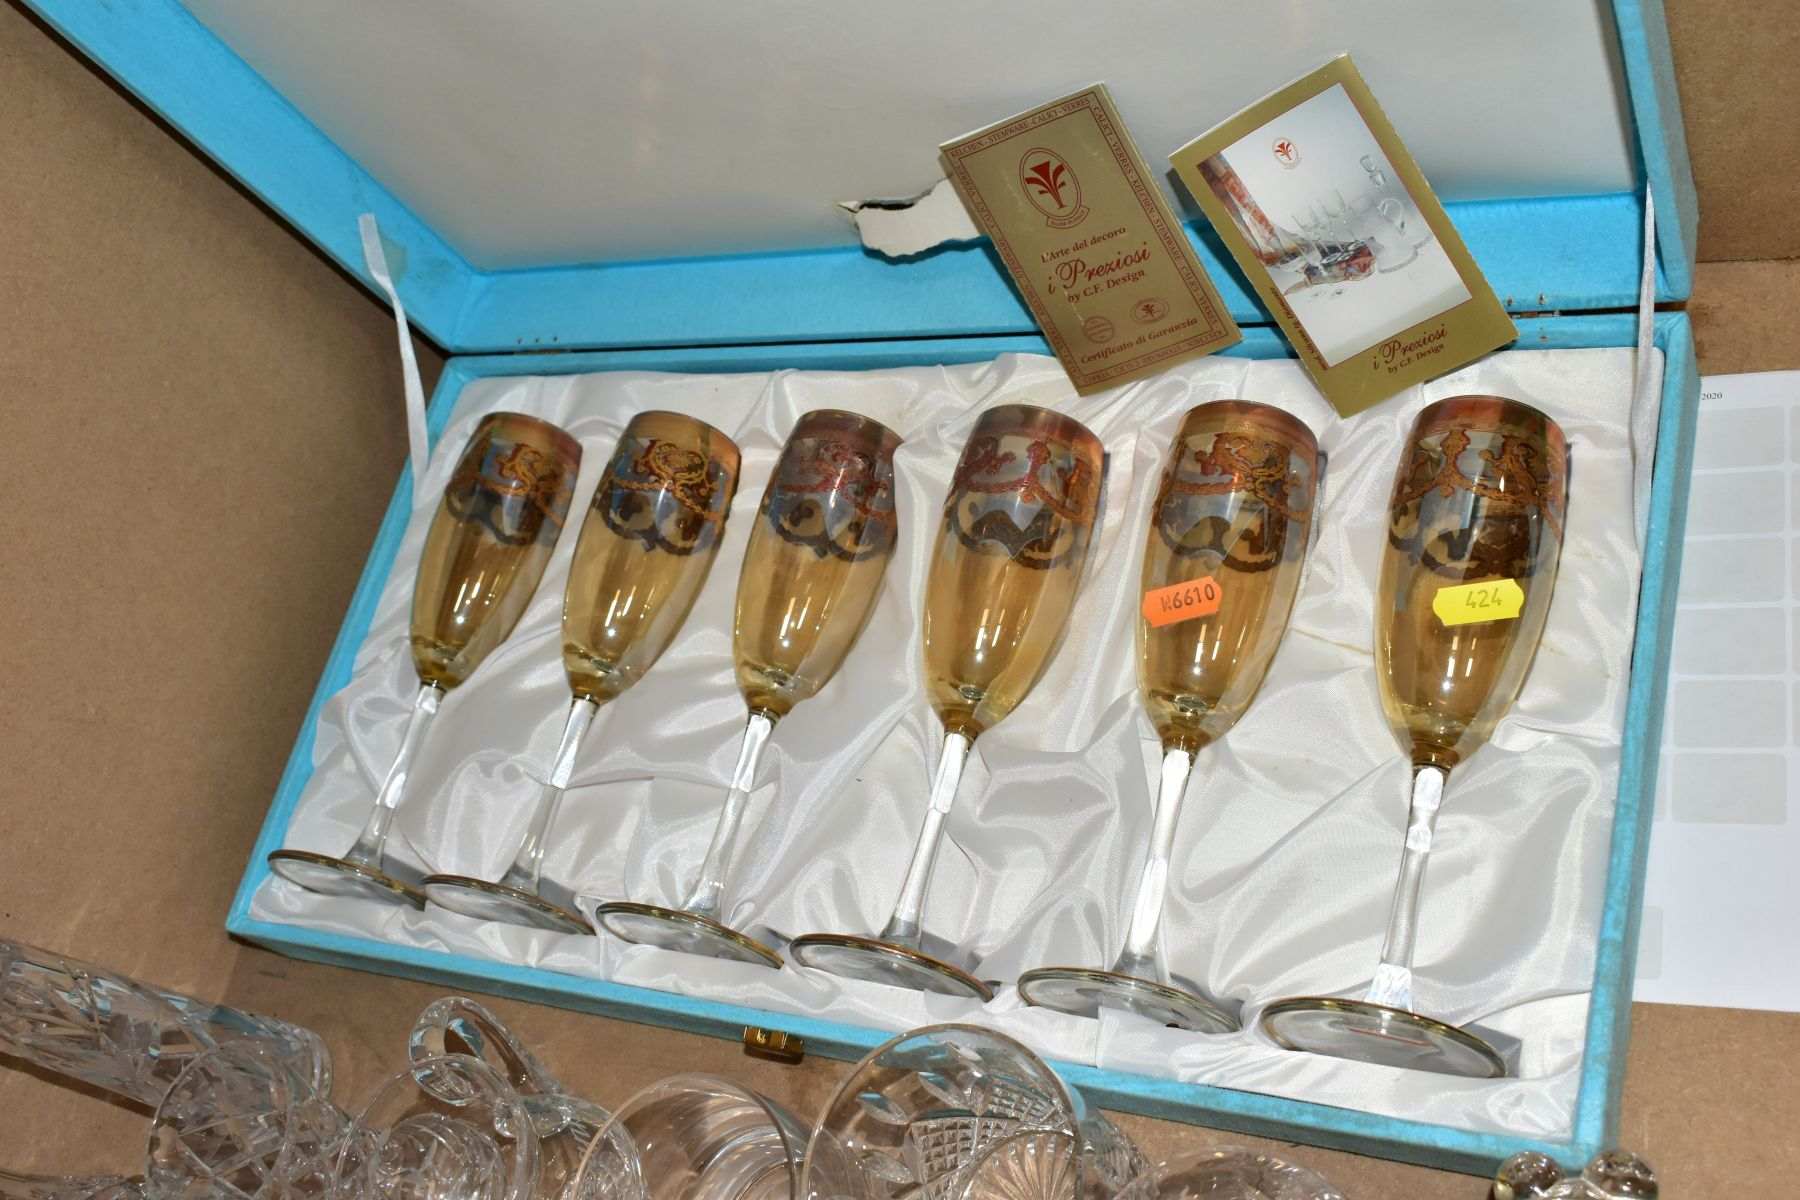 A GROUP OF GLASSWARE, including a boxed set of six Crystallera F.lli Fumo wine glasses, one set - Image 3 of 11